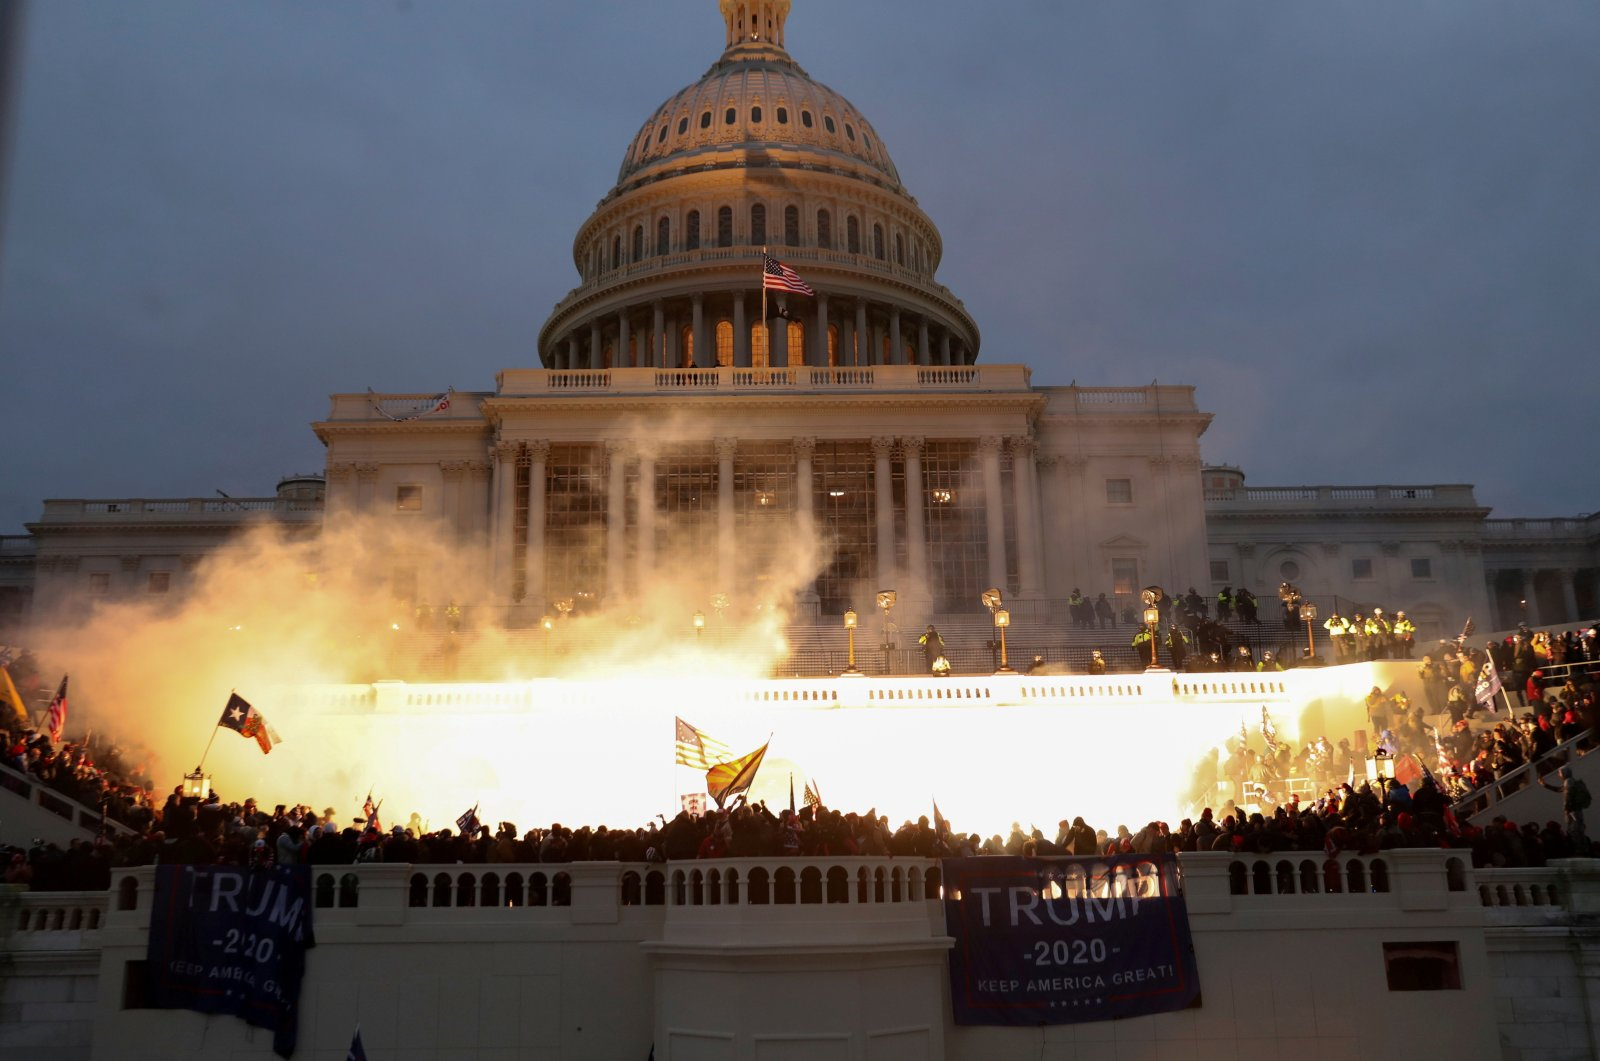 An explosion caused by a police munition is seen while supporters of U.S. President Donald Trump gather in front of the U.S. Capitol Building in Washington, U.S., Jan. 6, 2021. (Reuters Photo)